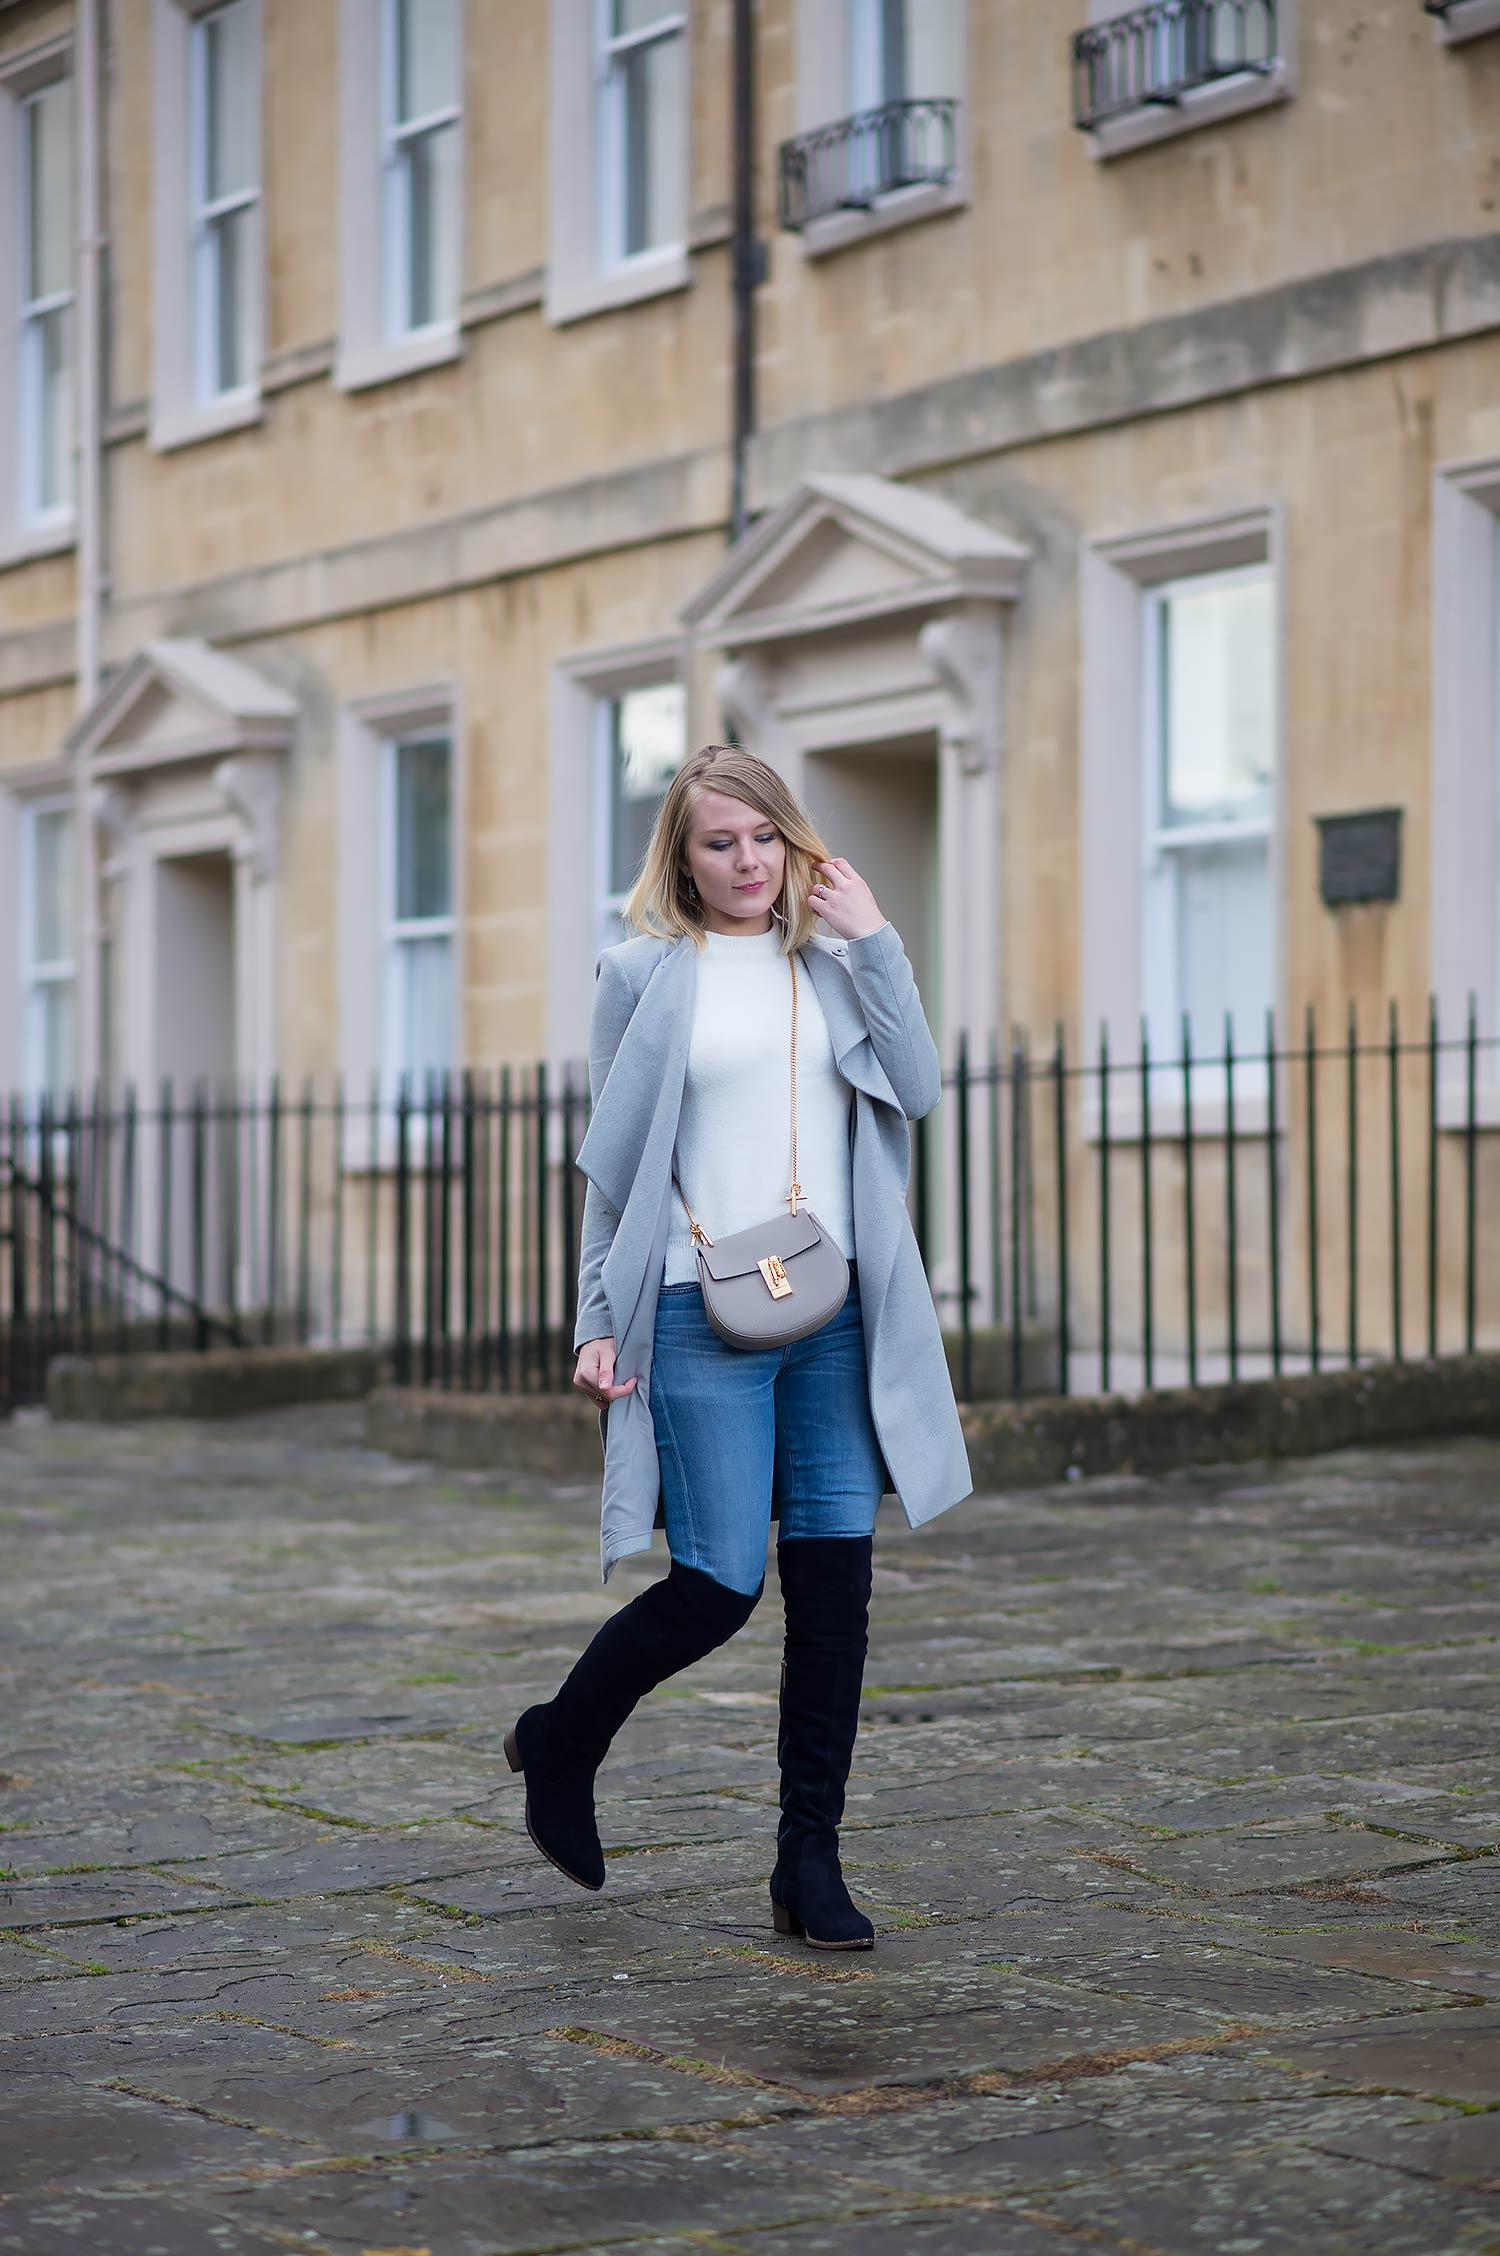 lorna-burford-uk-fashion-blogger-allsaints-coat-thigh-high-boots